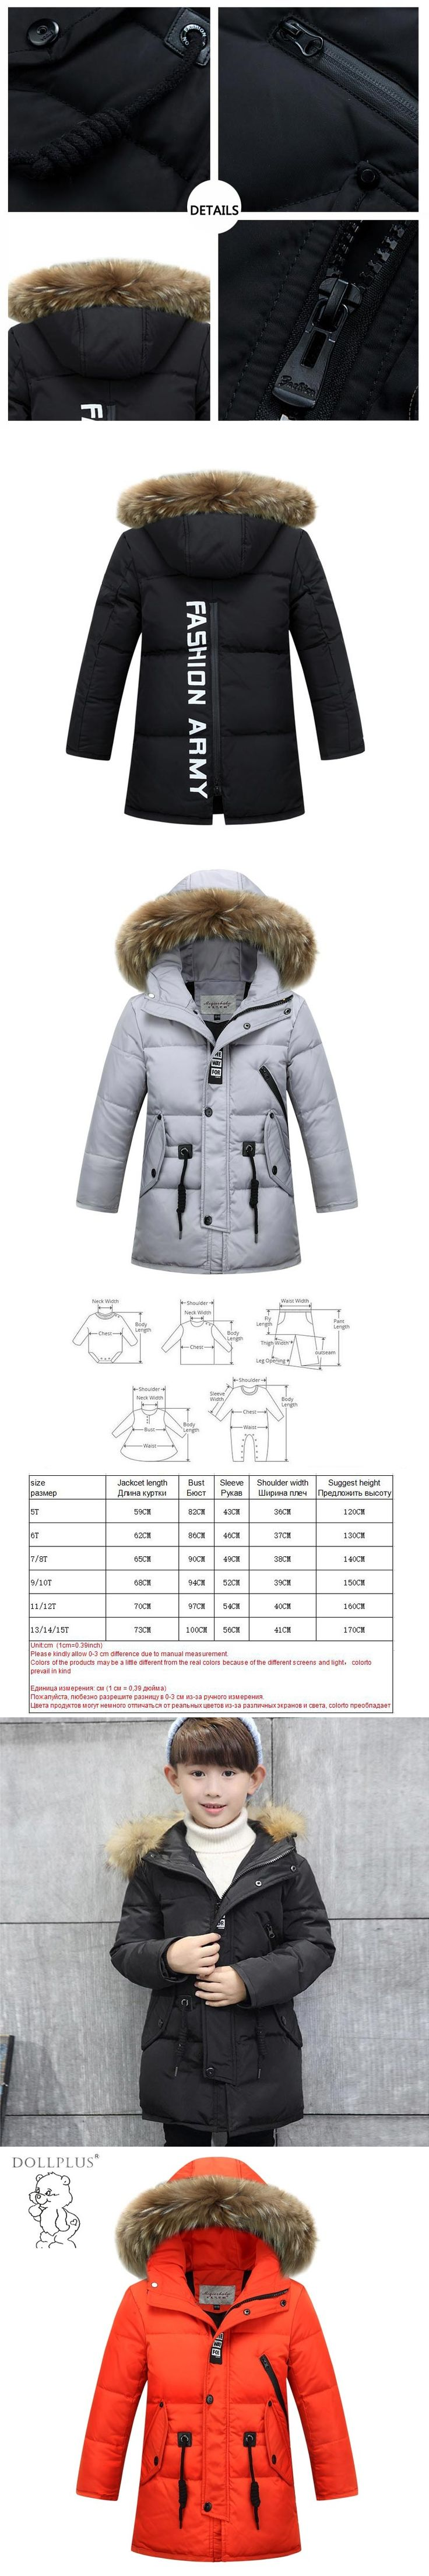 2017 Children'S Winter Jackets For Boys Down jacket Long Thick Boy Winter Coat Down Kids Outerwear Fur Collar Big Kids Clothing